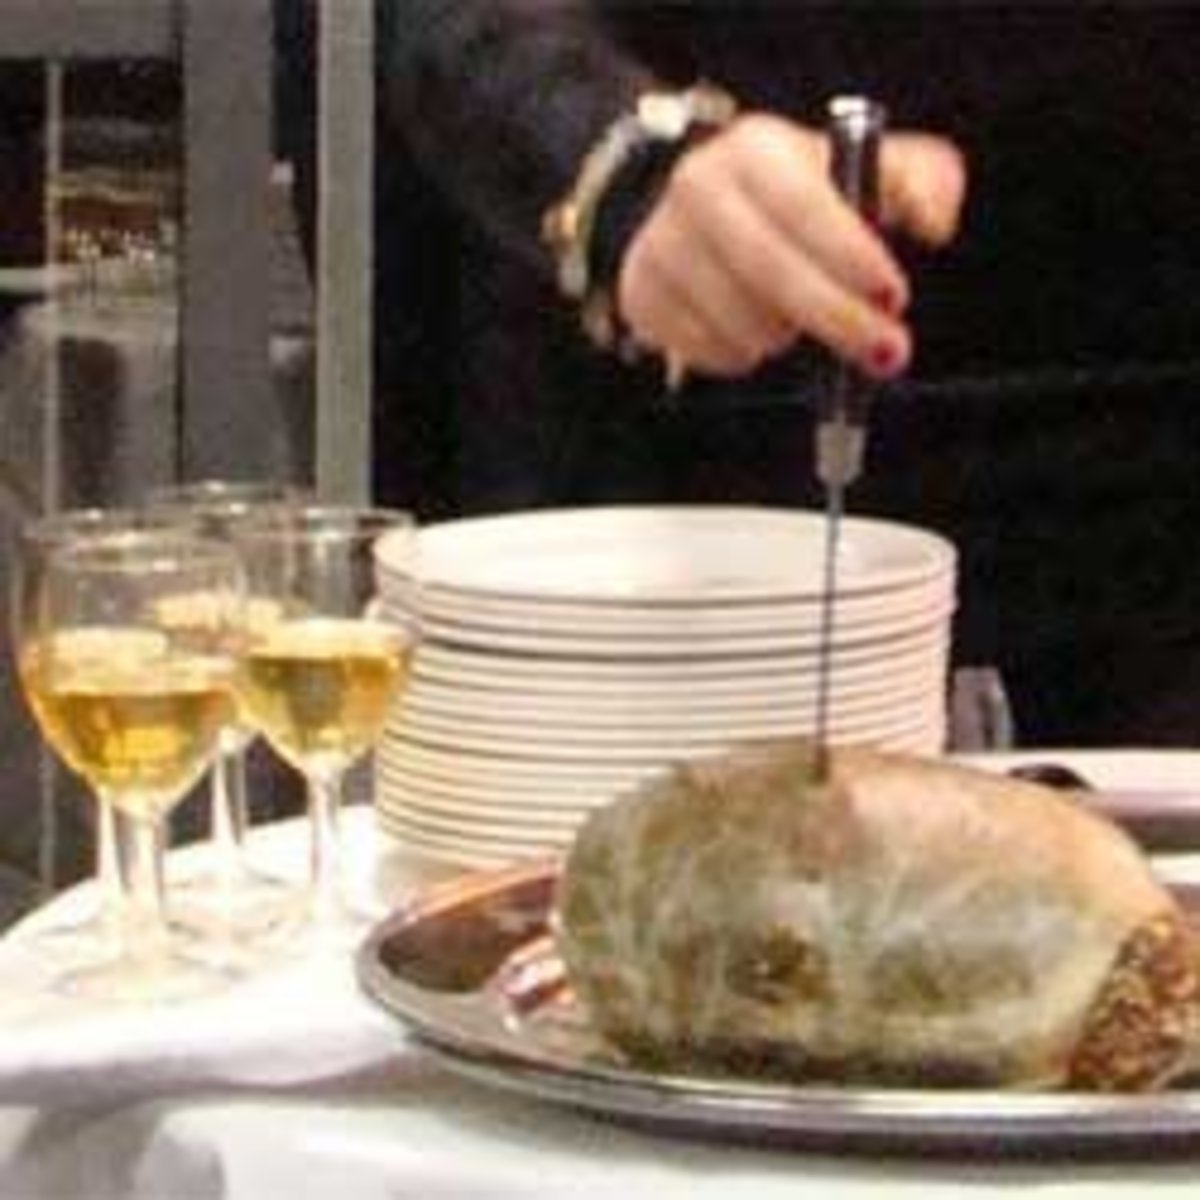 Carving the haggis at a Burns Night celebration.